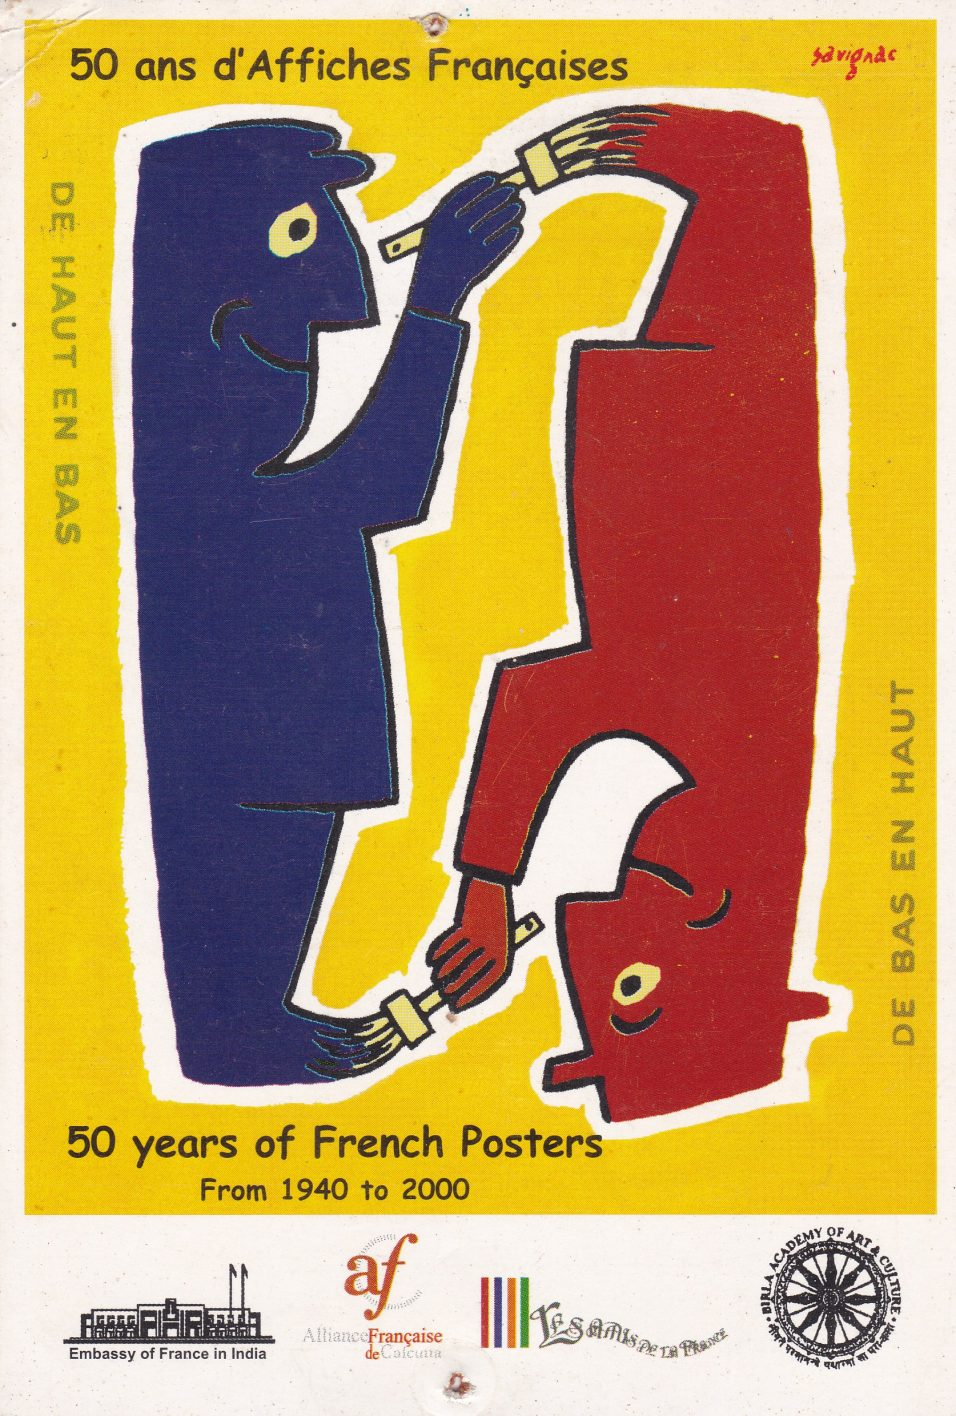 50 years of French posters exhibition in Calcutta 2003_20190930_0001 - Copy